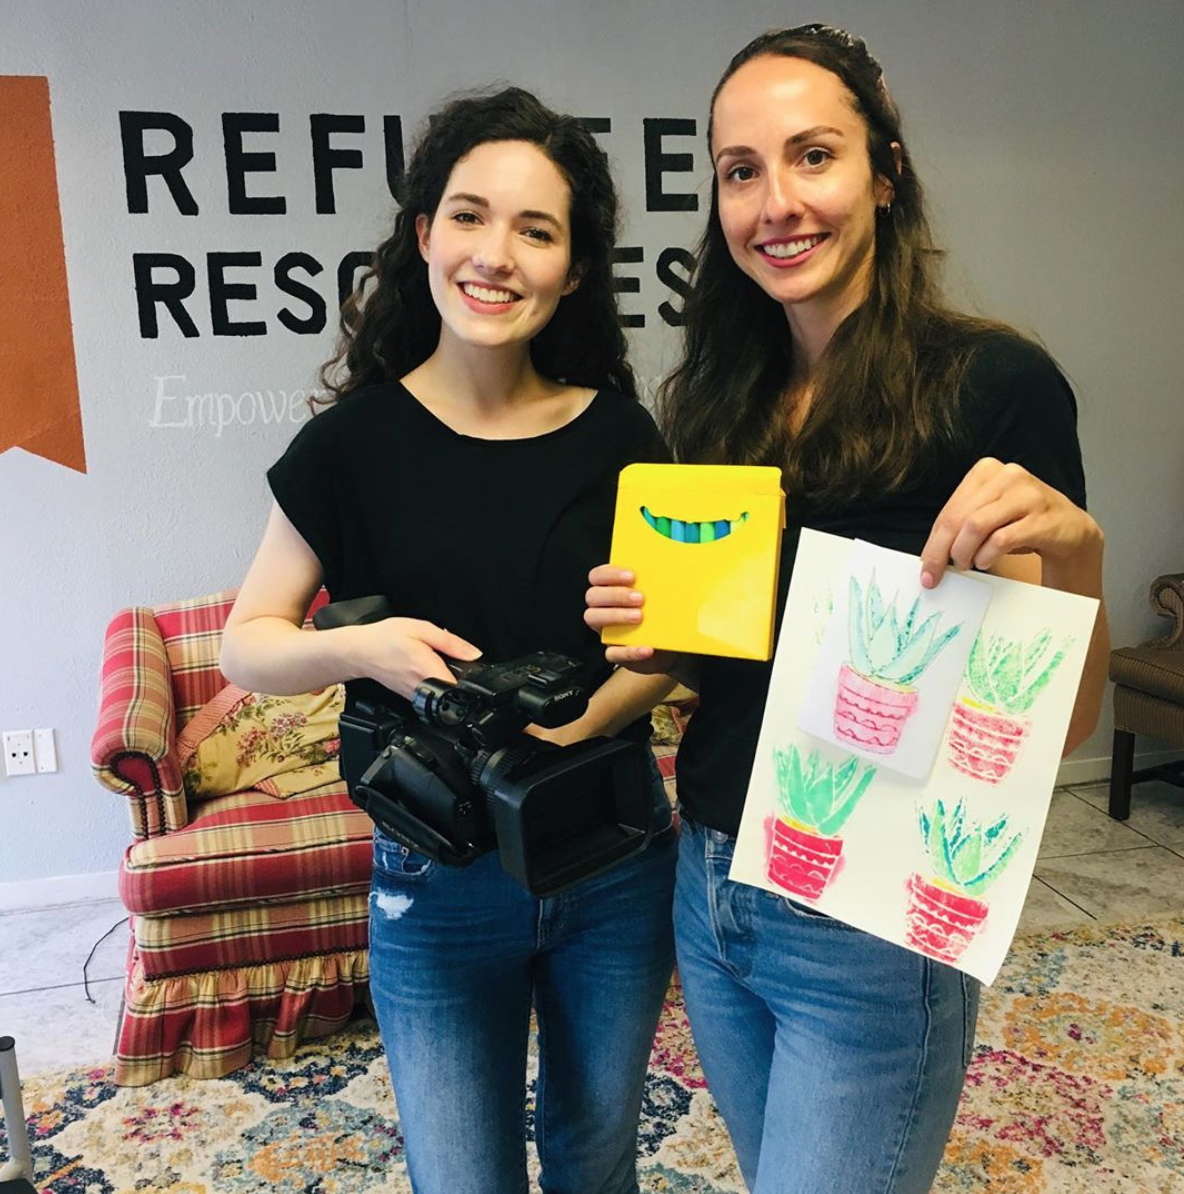 Me, left, Filming a project about literacy. - Pictured with Refugee Resources art teacher, Jordan.